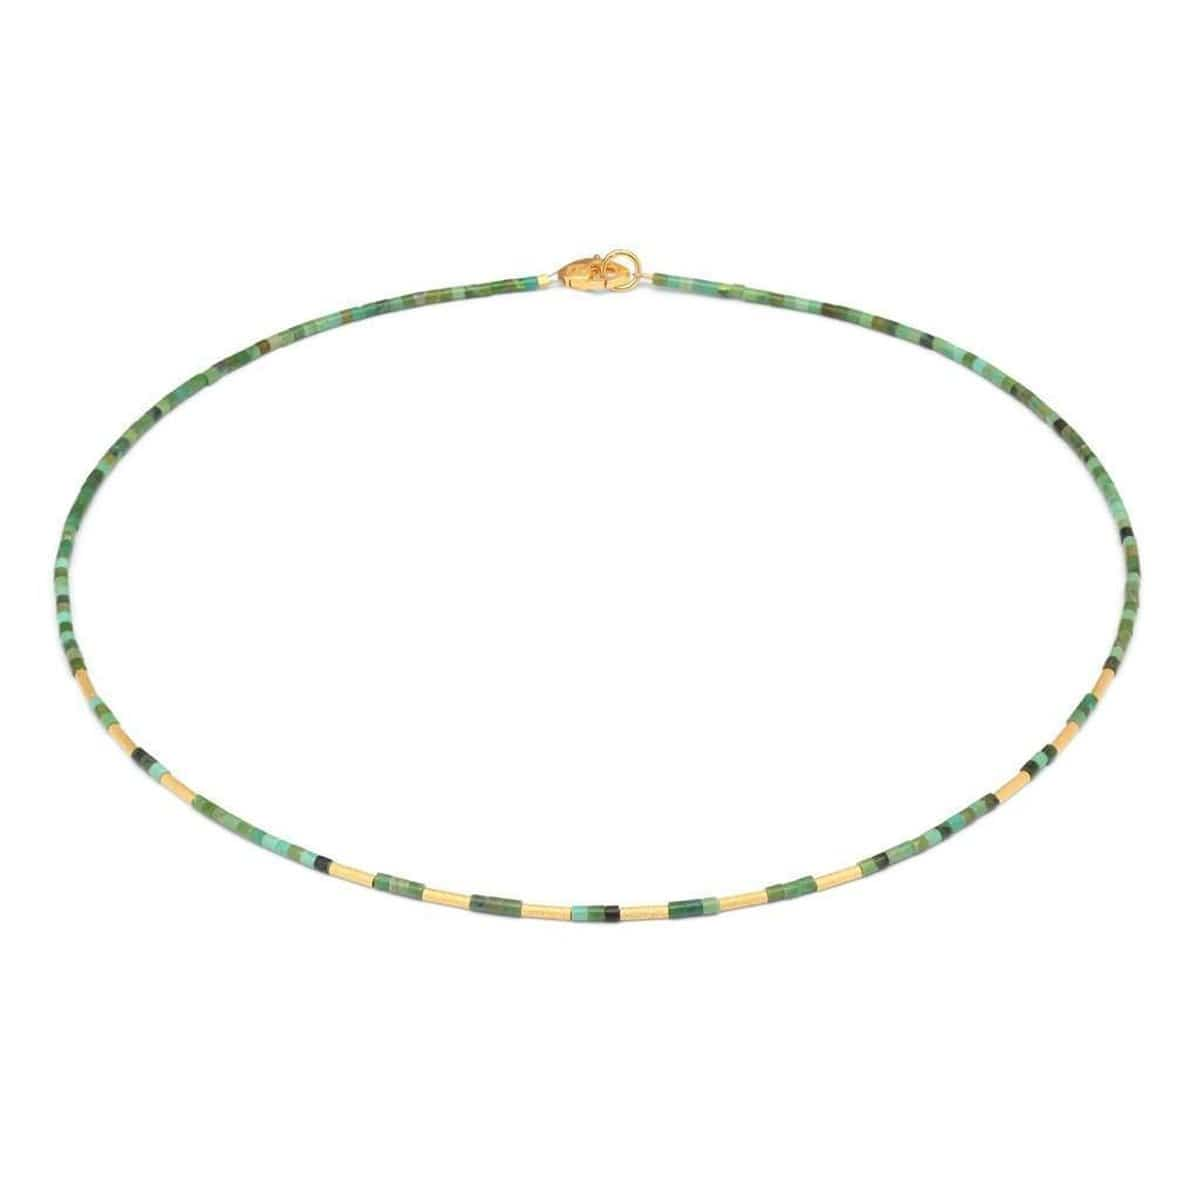 Dremiani Green Turquoise Necklace - 84453356-Bernd Wolf-Renee Taylor Gallery